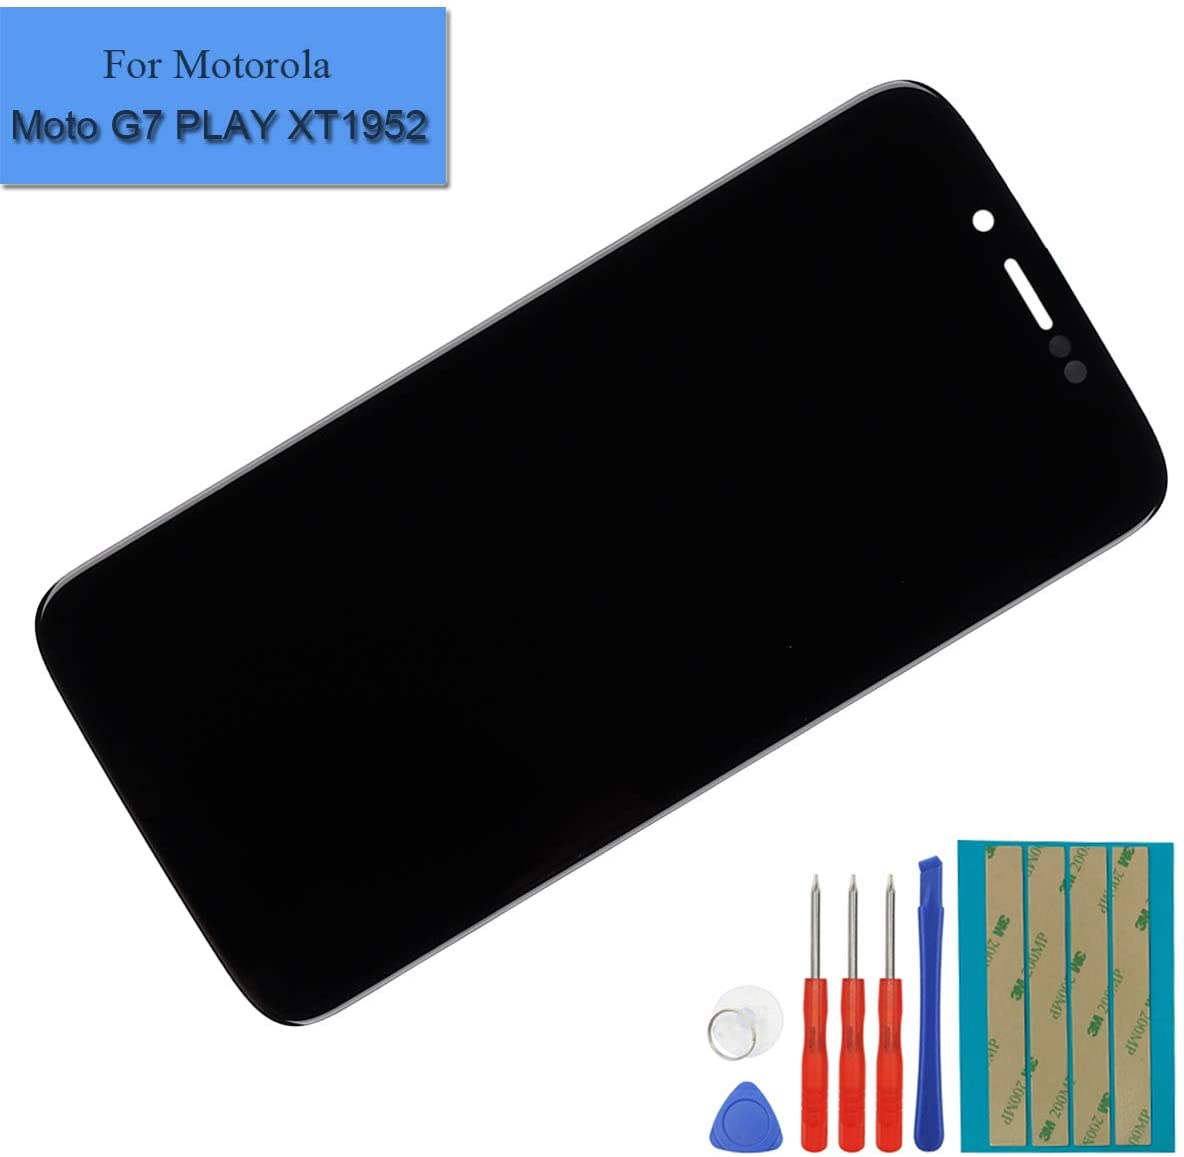 Replacement LCD Display Compatible for Motorola Moto G7 Play XT1952 LCD Touch Screen Digitizer Assembly with Adhesive and Toolkit (Black)